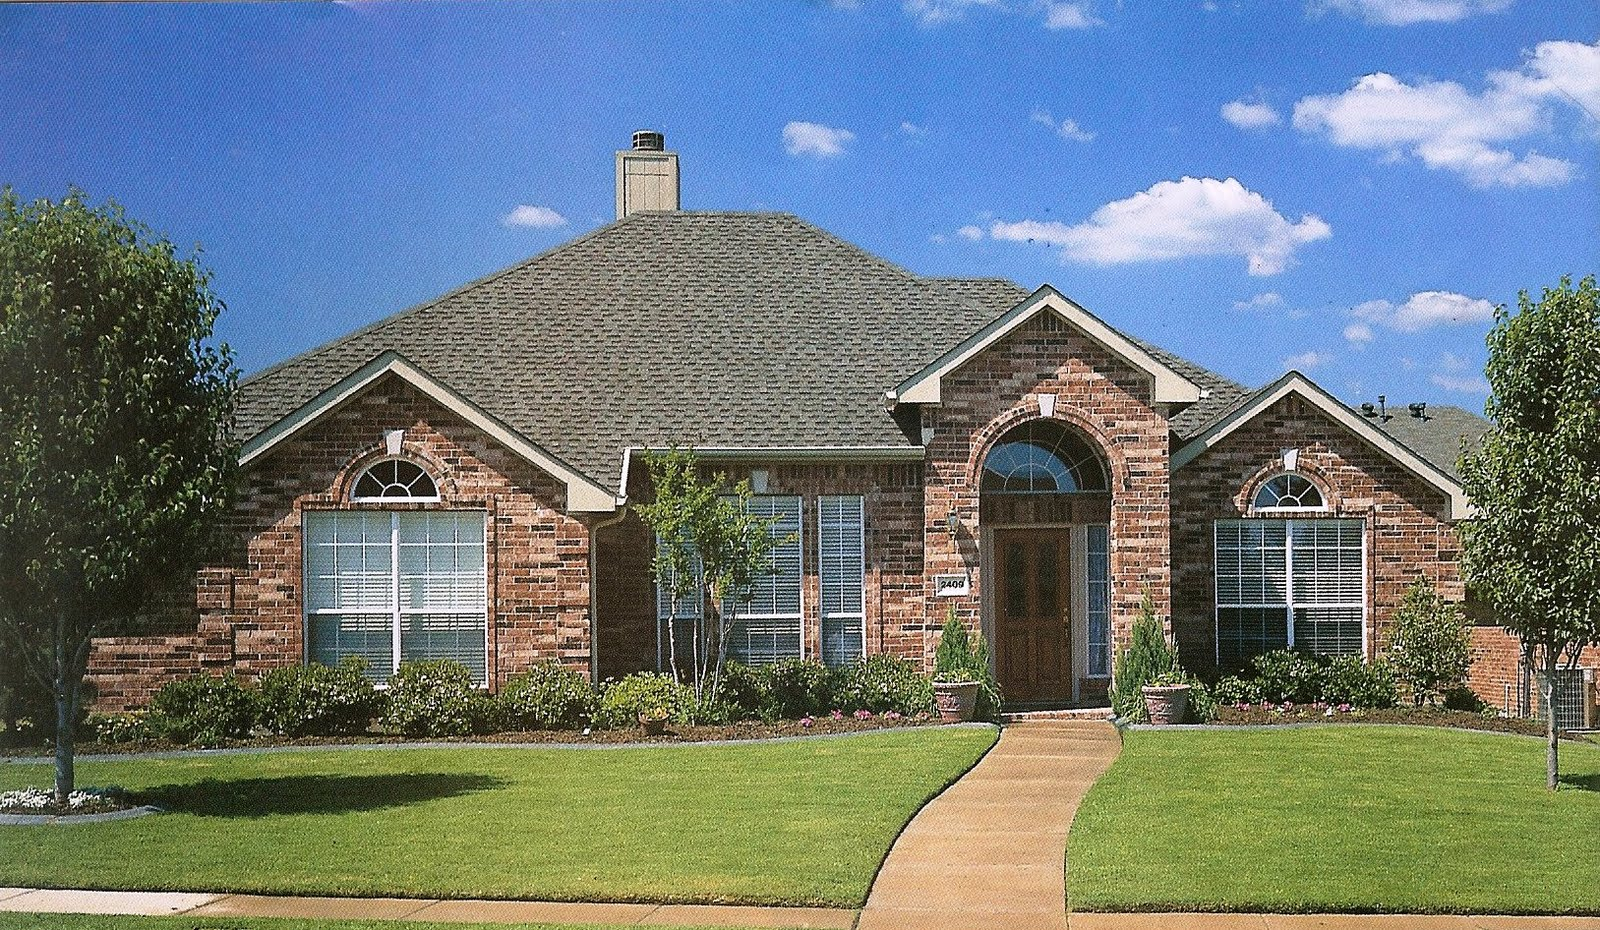 Virginia roofing siding company composite shingle for Nice house picture